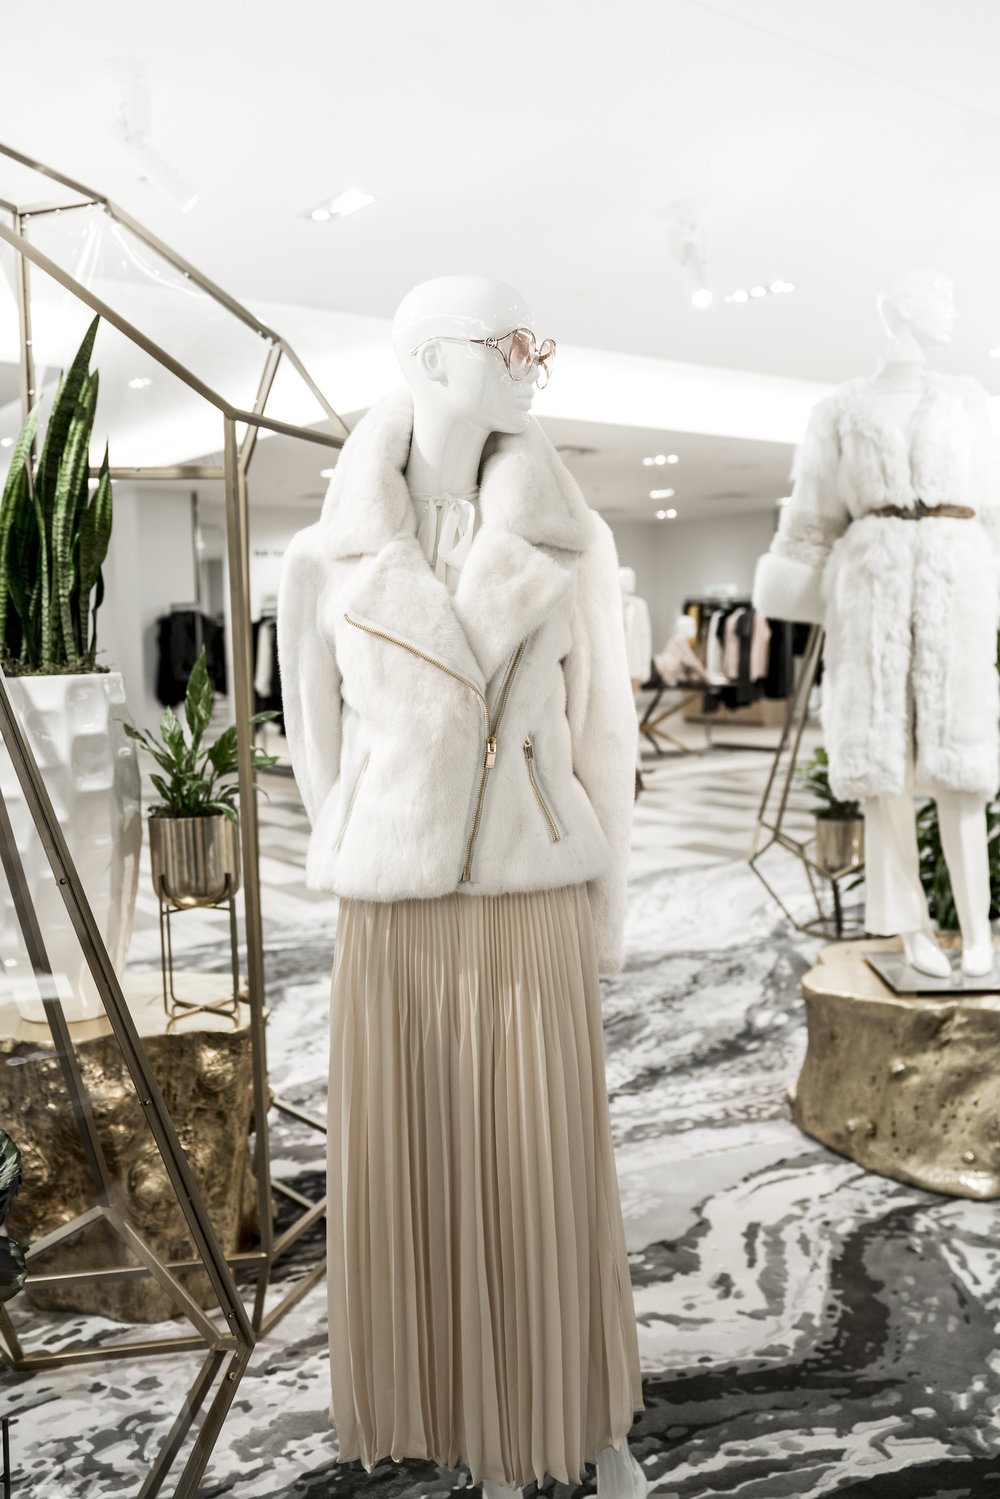 (Women's designer on 2.   Photo: Saks Fifth Avenue)